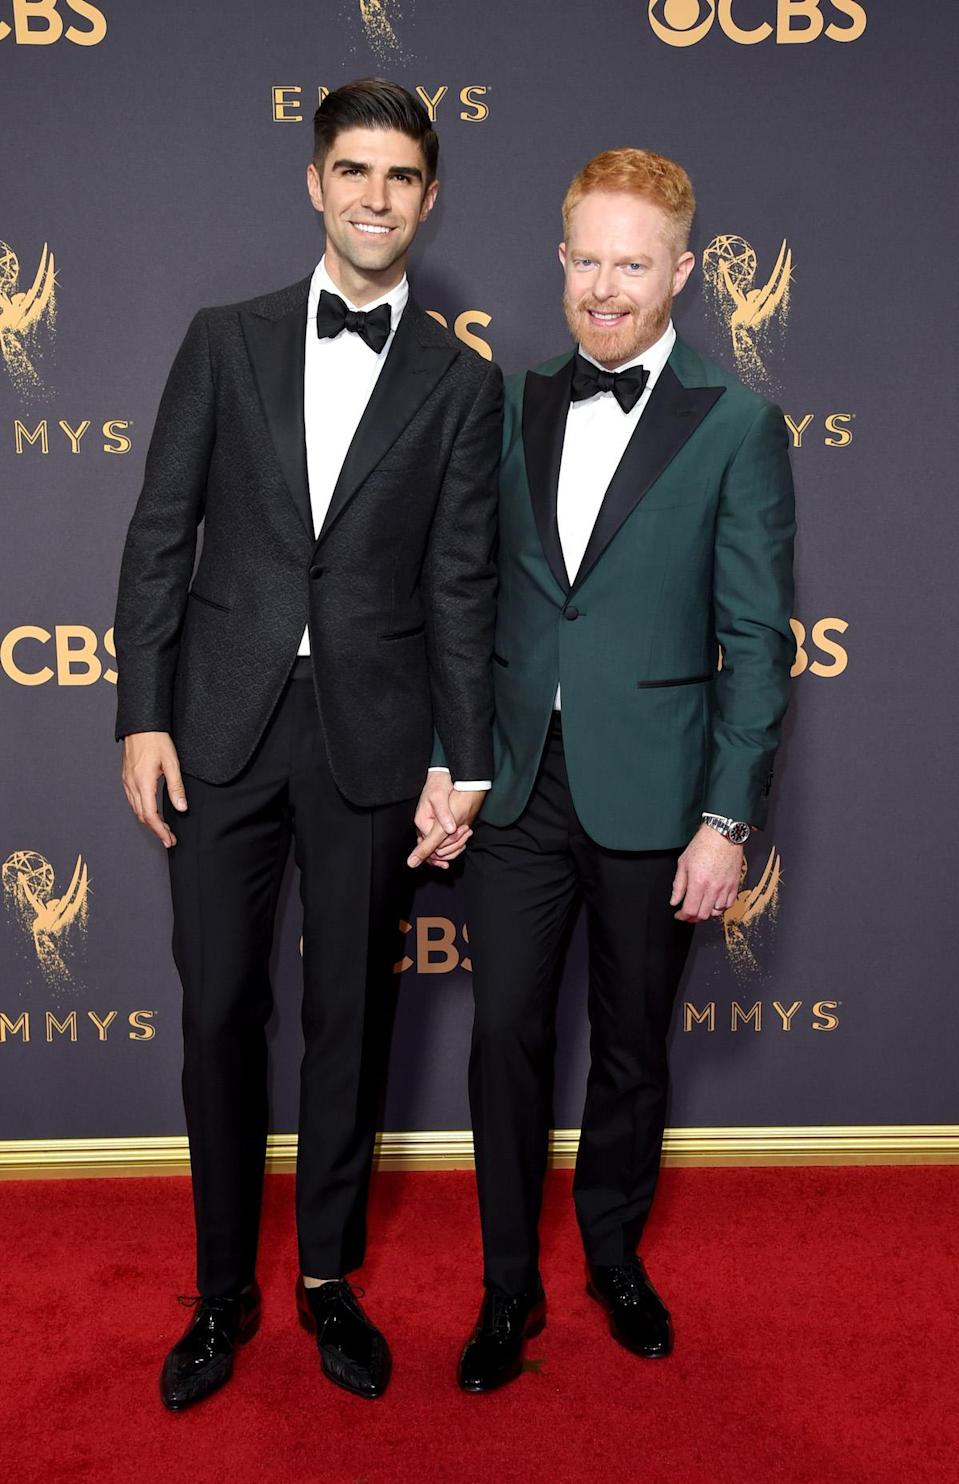 <p>Justin Mikita, left, and actor Jesse Tyler Ferguson attend the 69th Primetime Emmy Awards on Sept. 17, 2017. (Photo: Getty Images) </p>